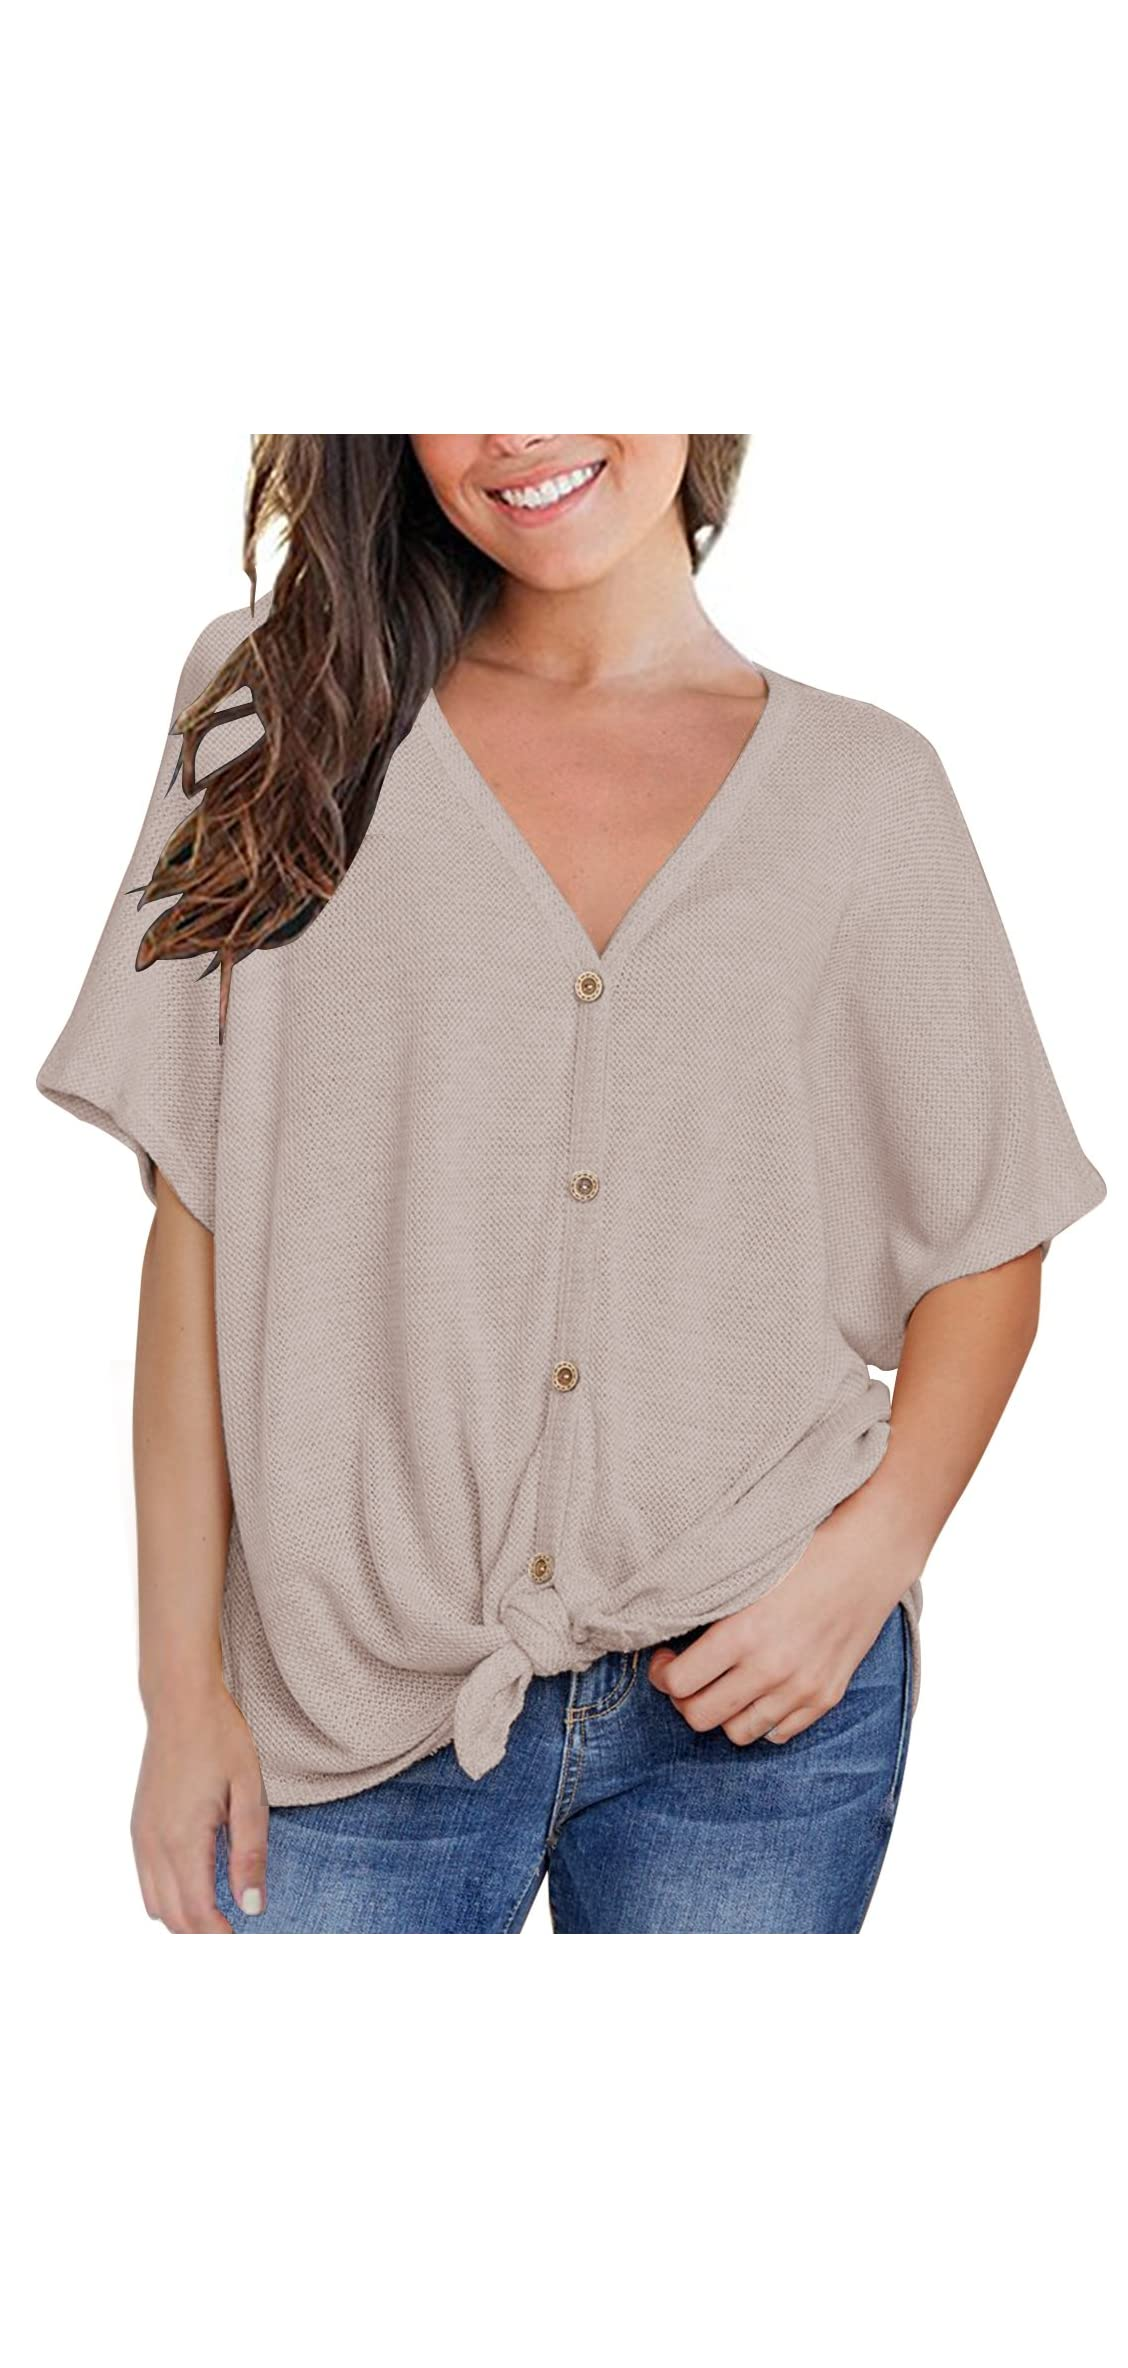 Womens Loose Blouse Short Sleeve V Neck Button Down T Tie